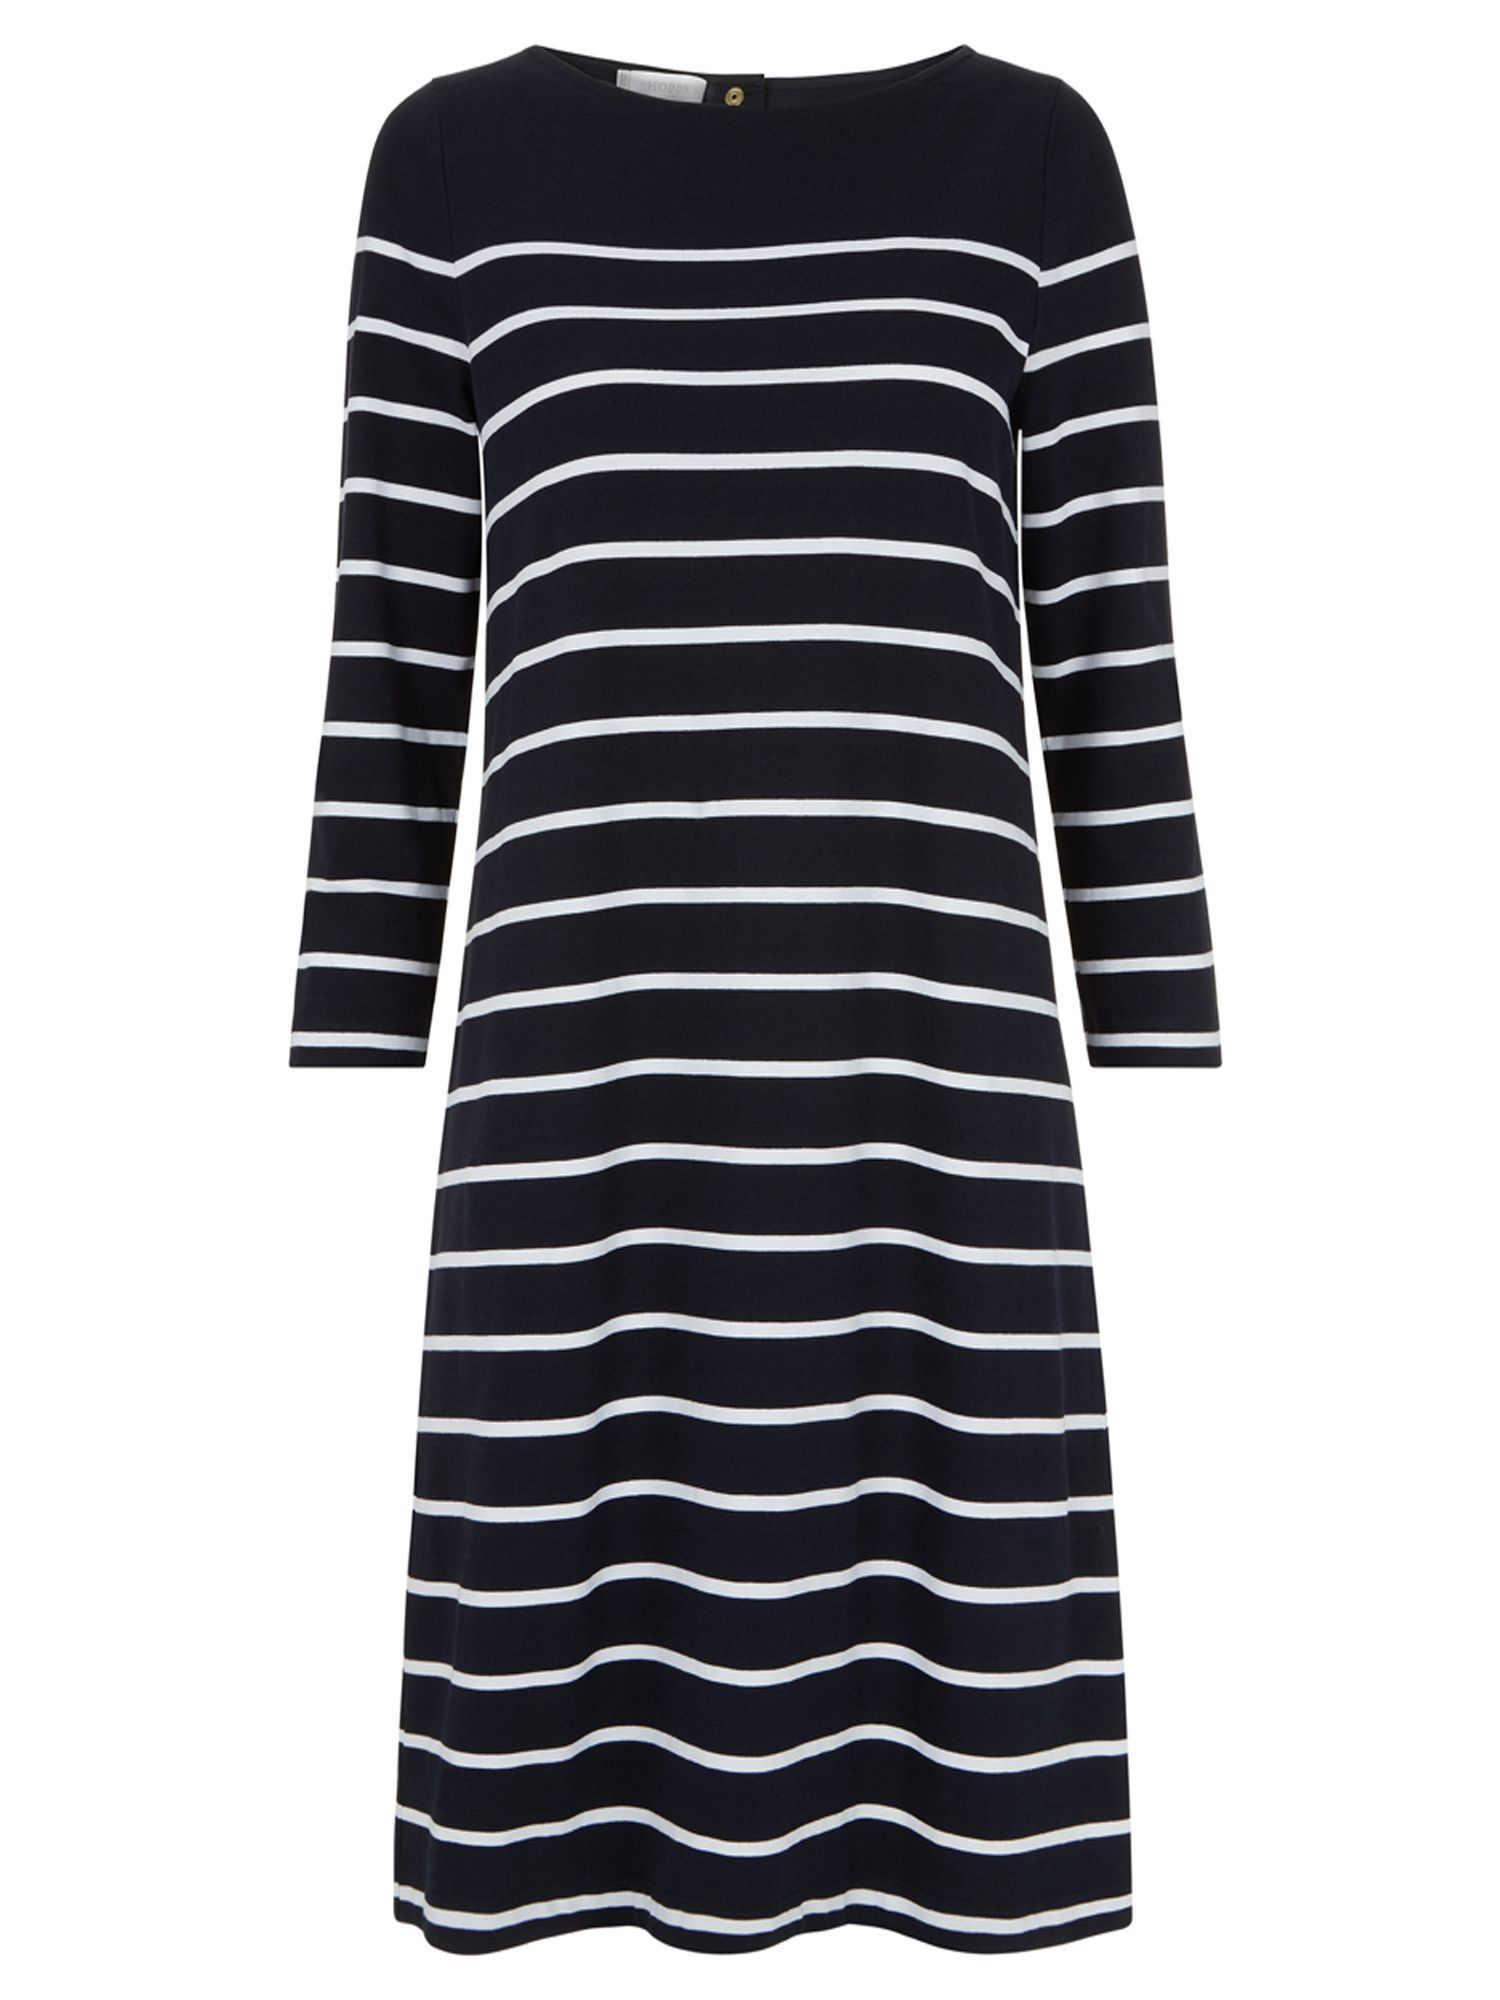 Hobbs Bailey Dress, Multi-Coloured